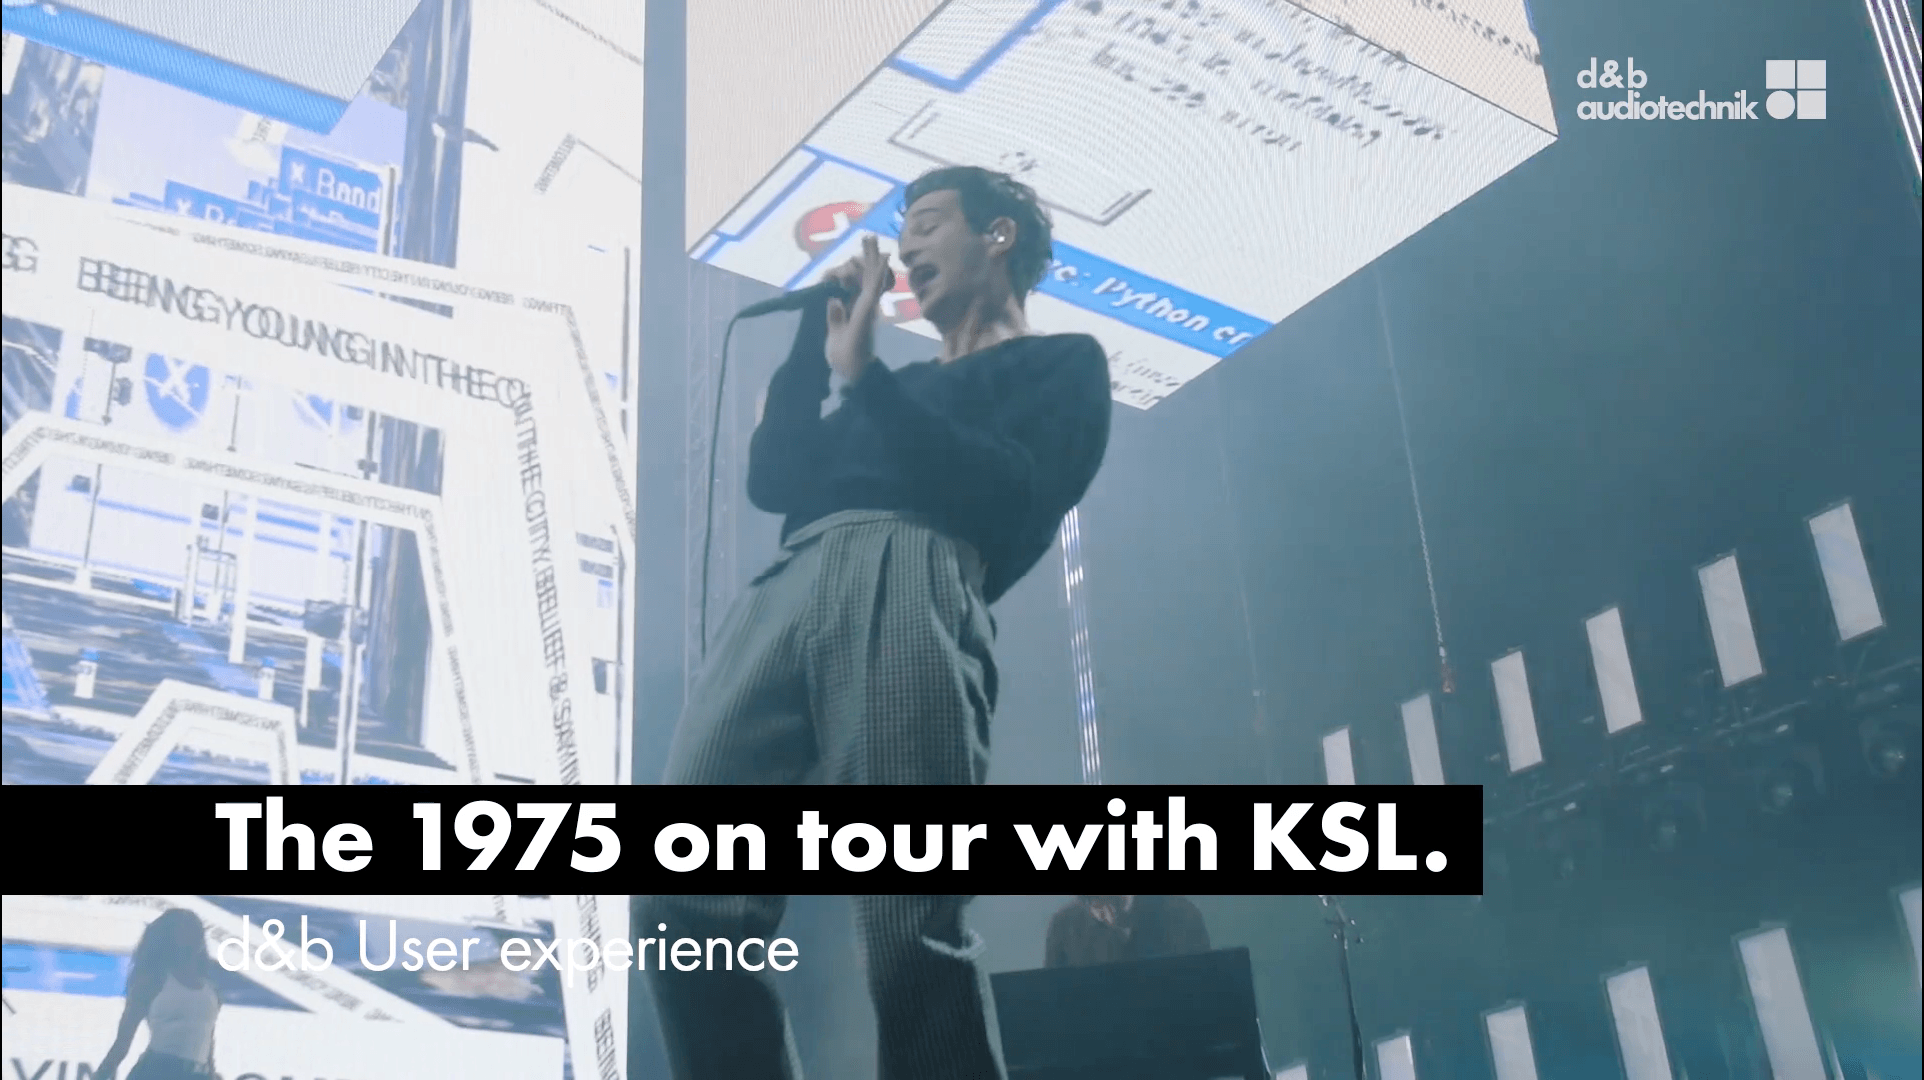 The 1975 on tour with KSL: Client – d&b audiotechnik